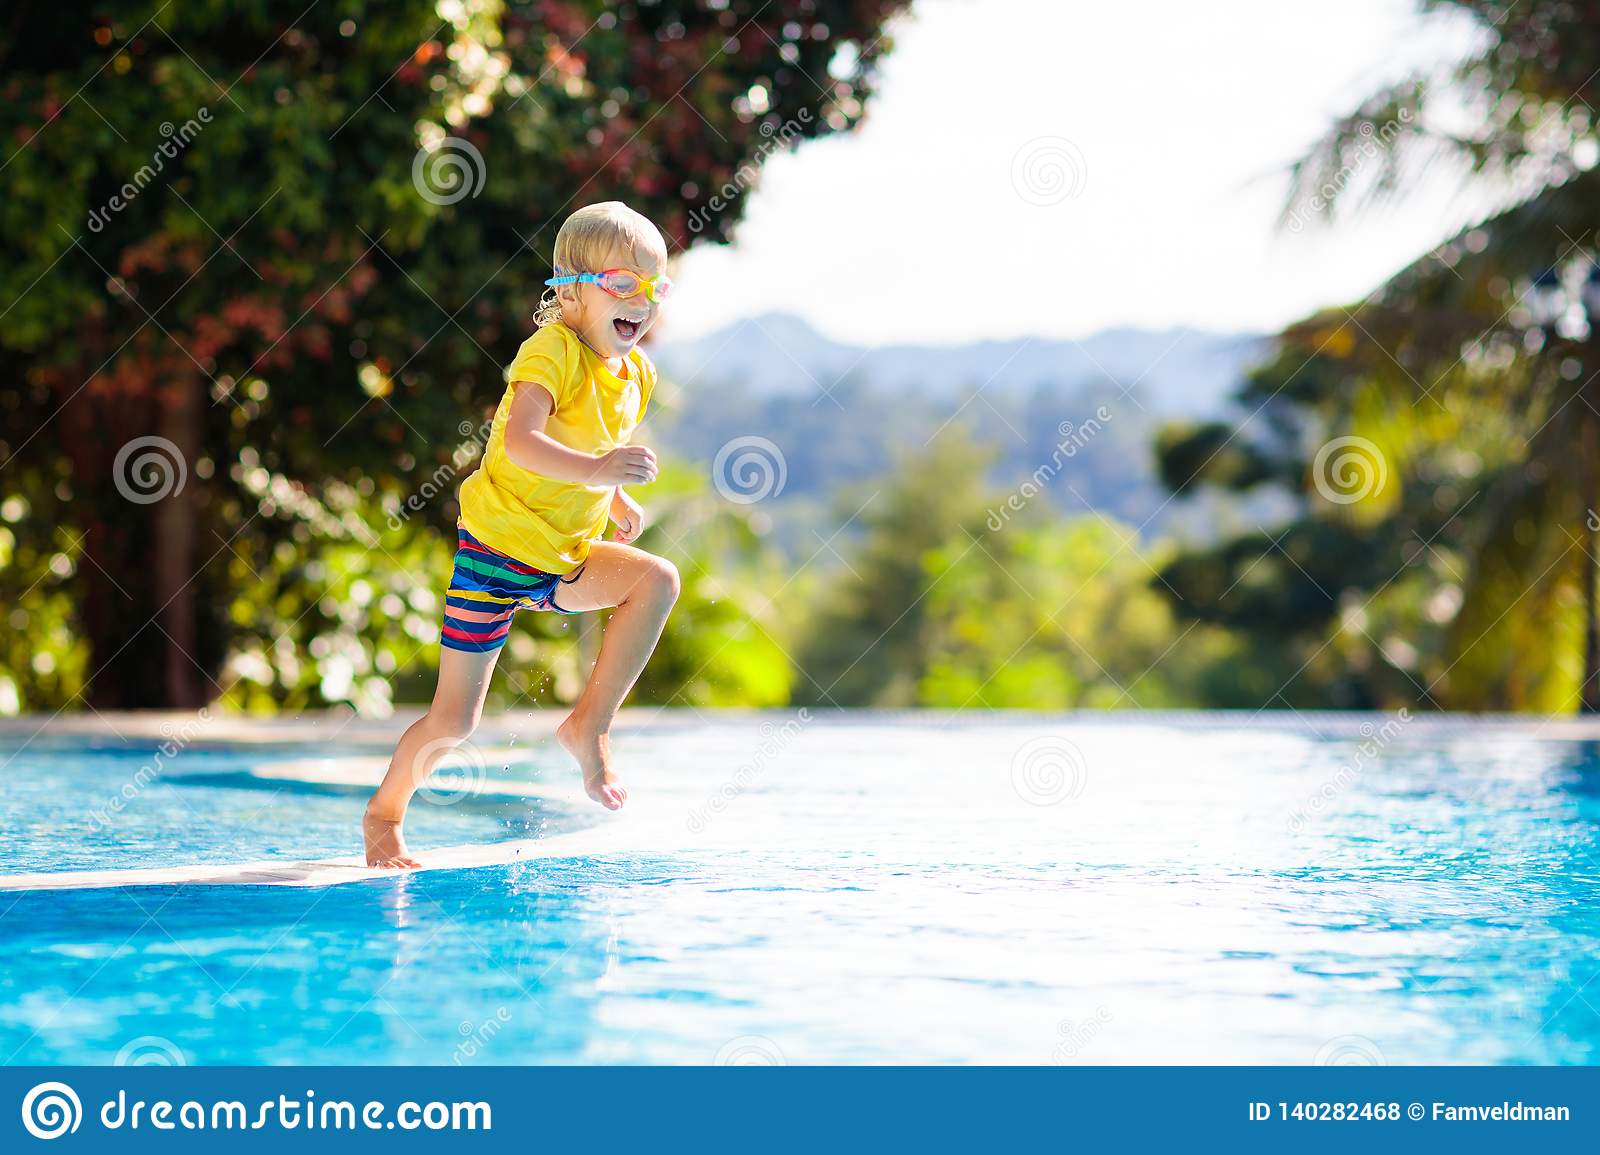 Child in swimming pool. Summer vacation with kids